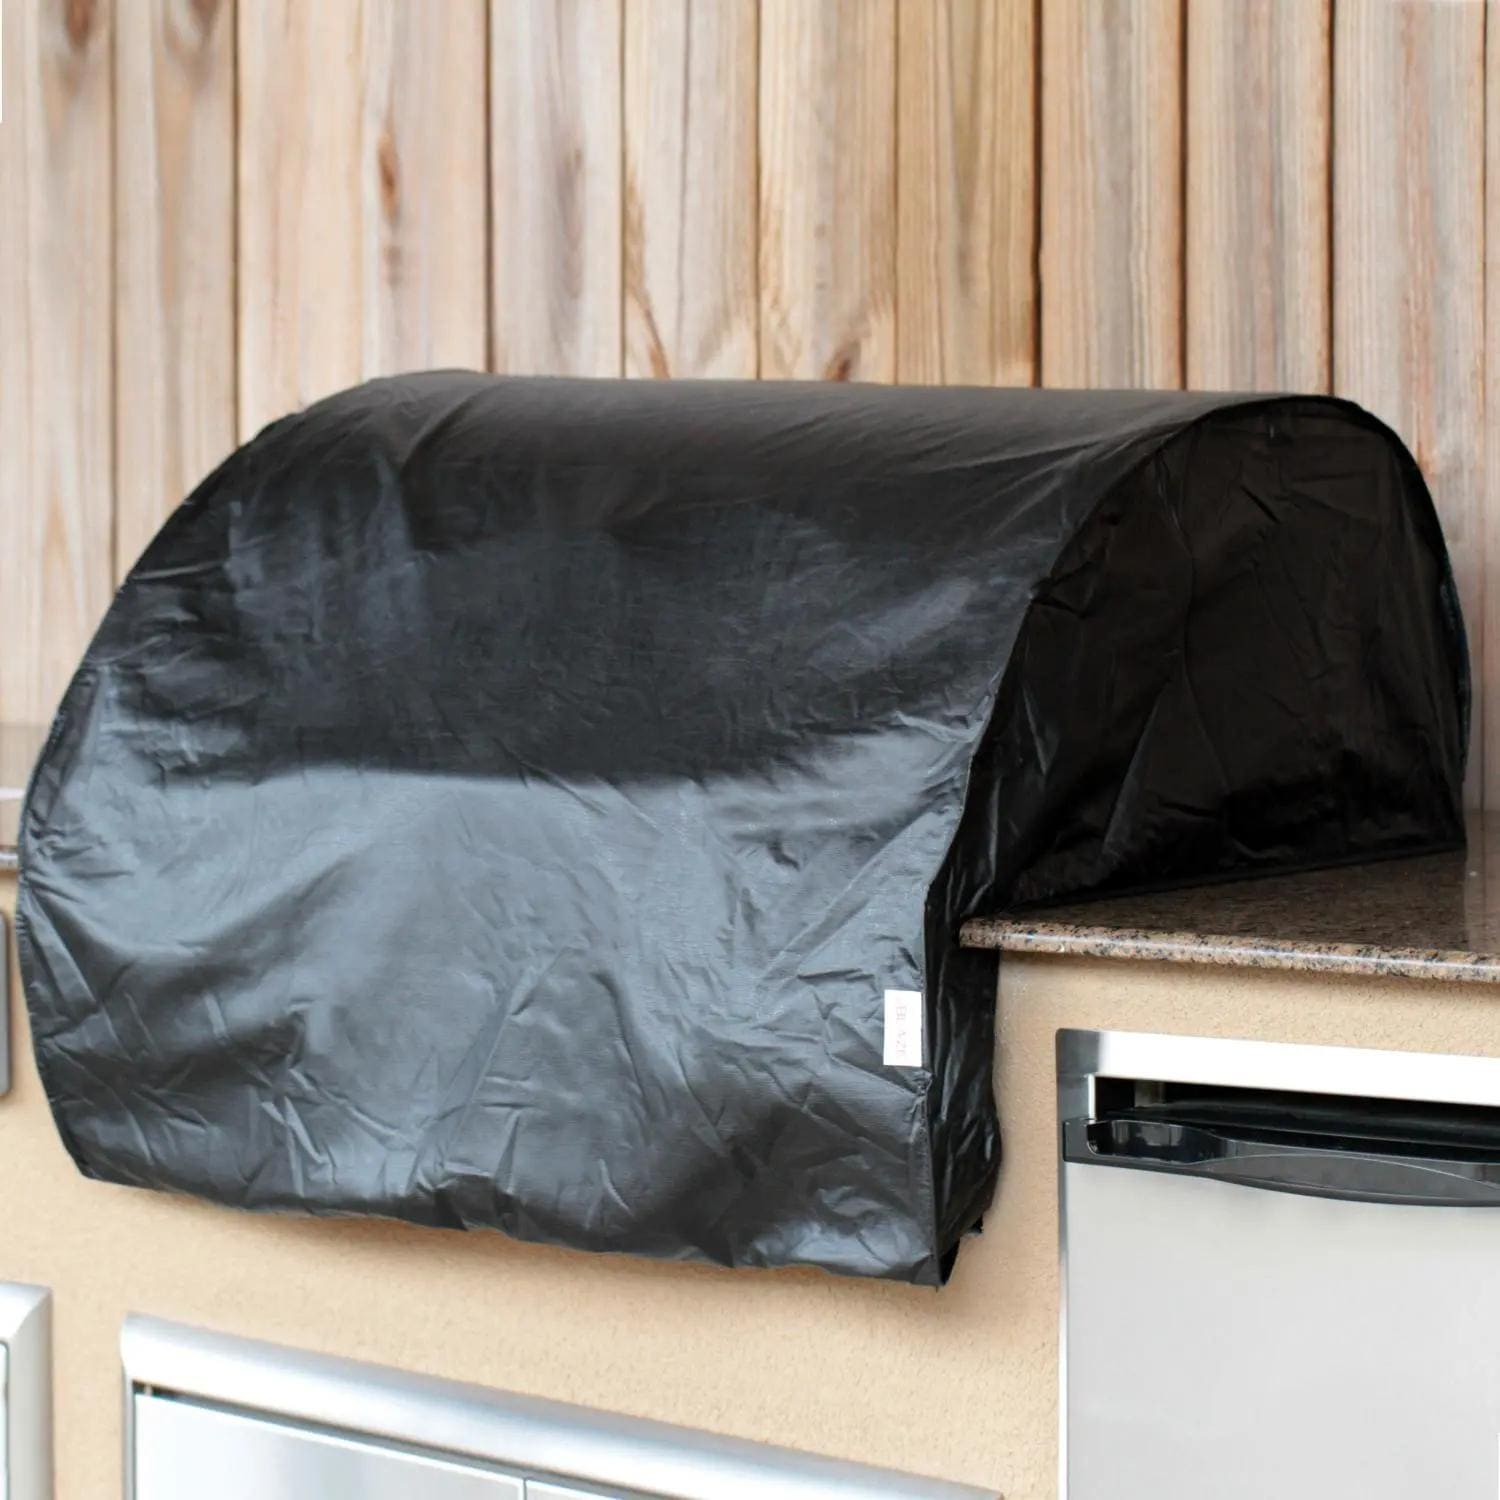 Blaze Outdoor Products  Grill Cover For Blaze 4-Burner and Charcoal Built-In Grills - 4BICV